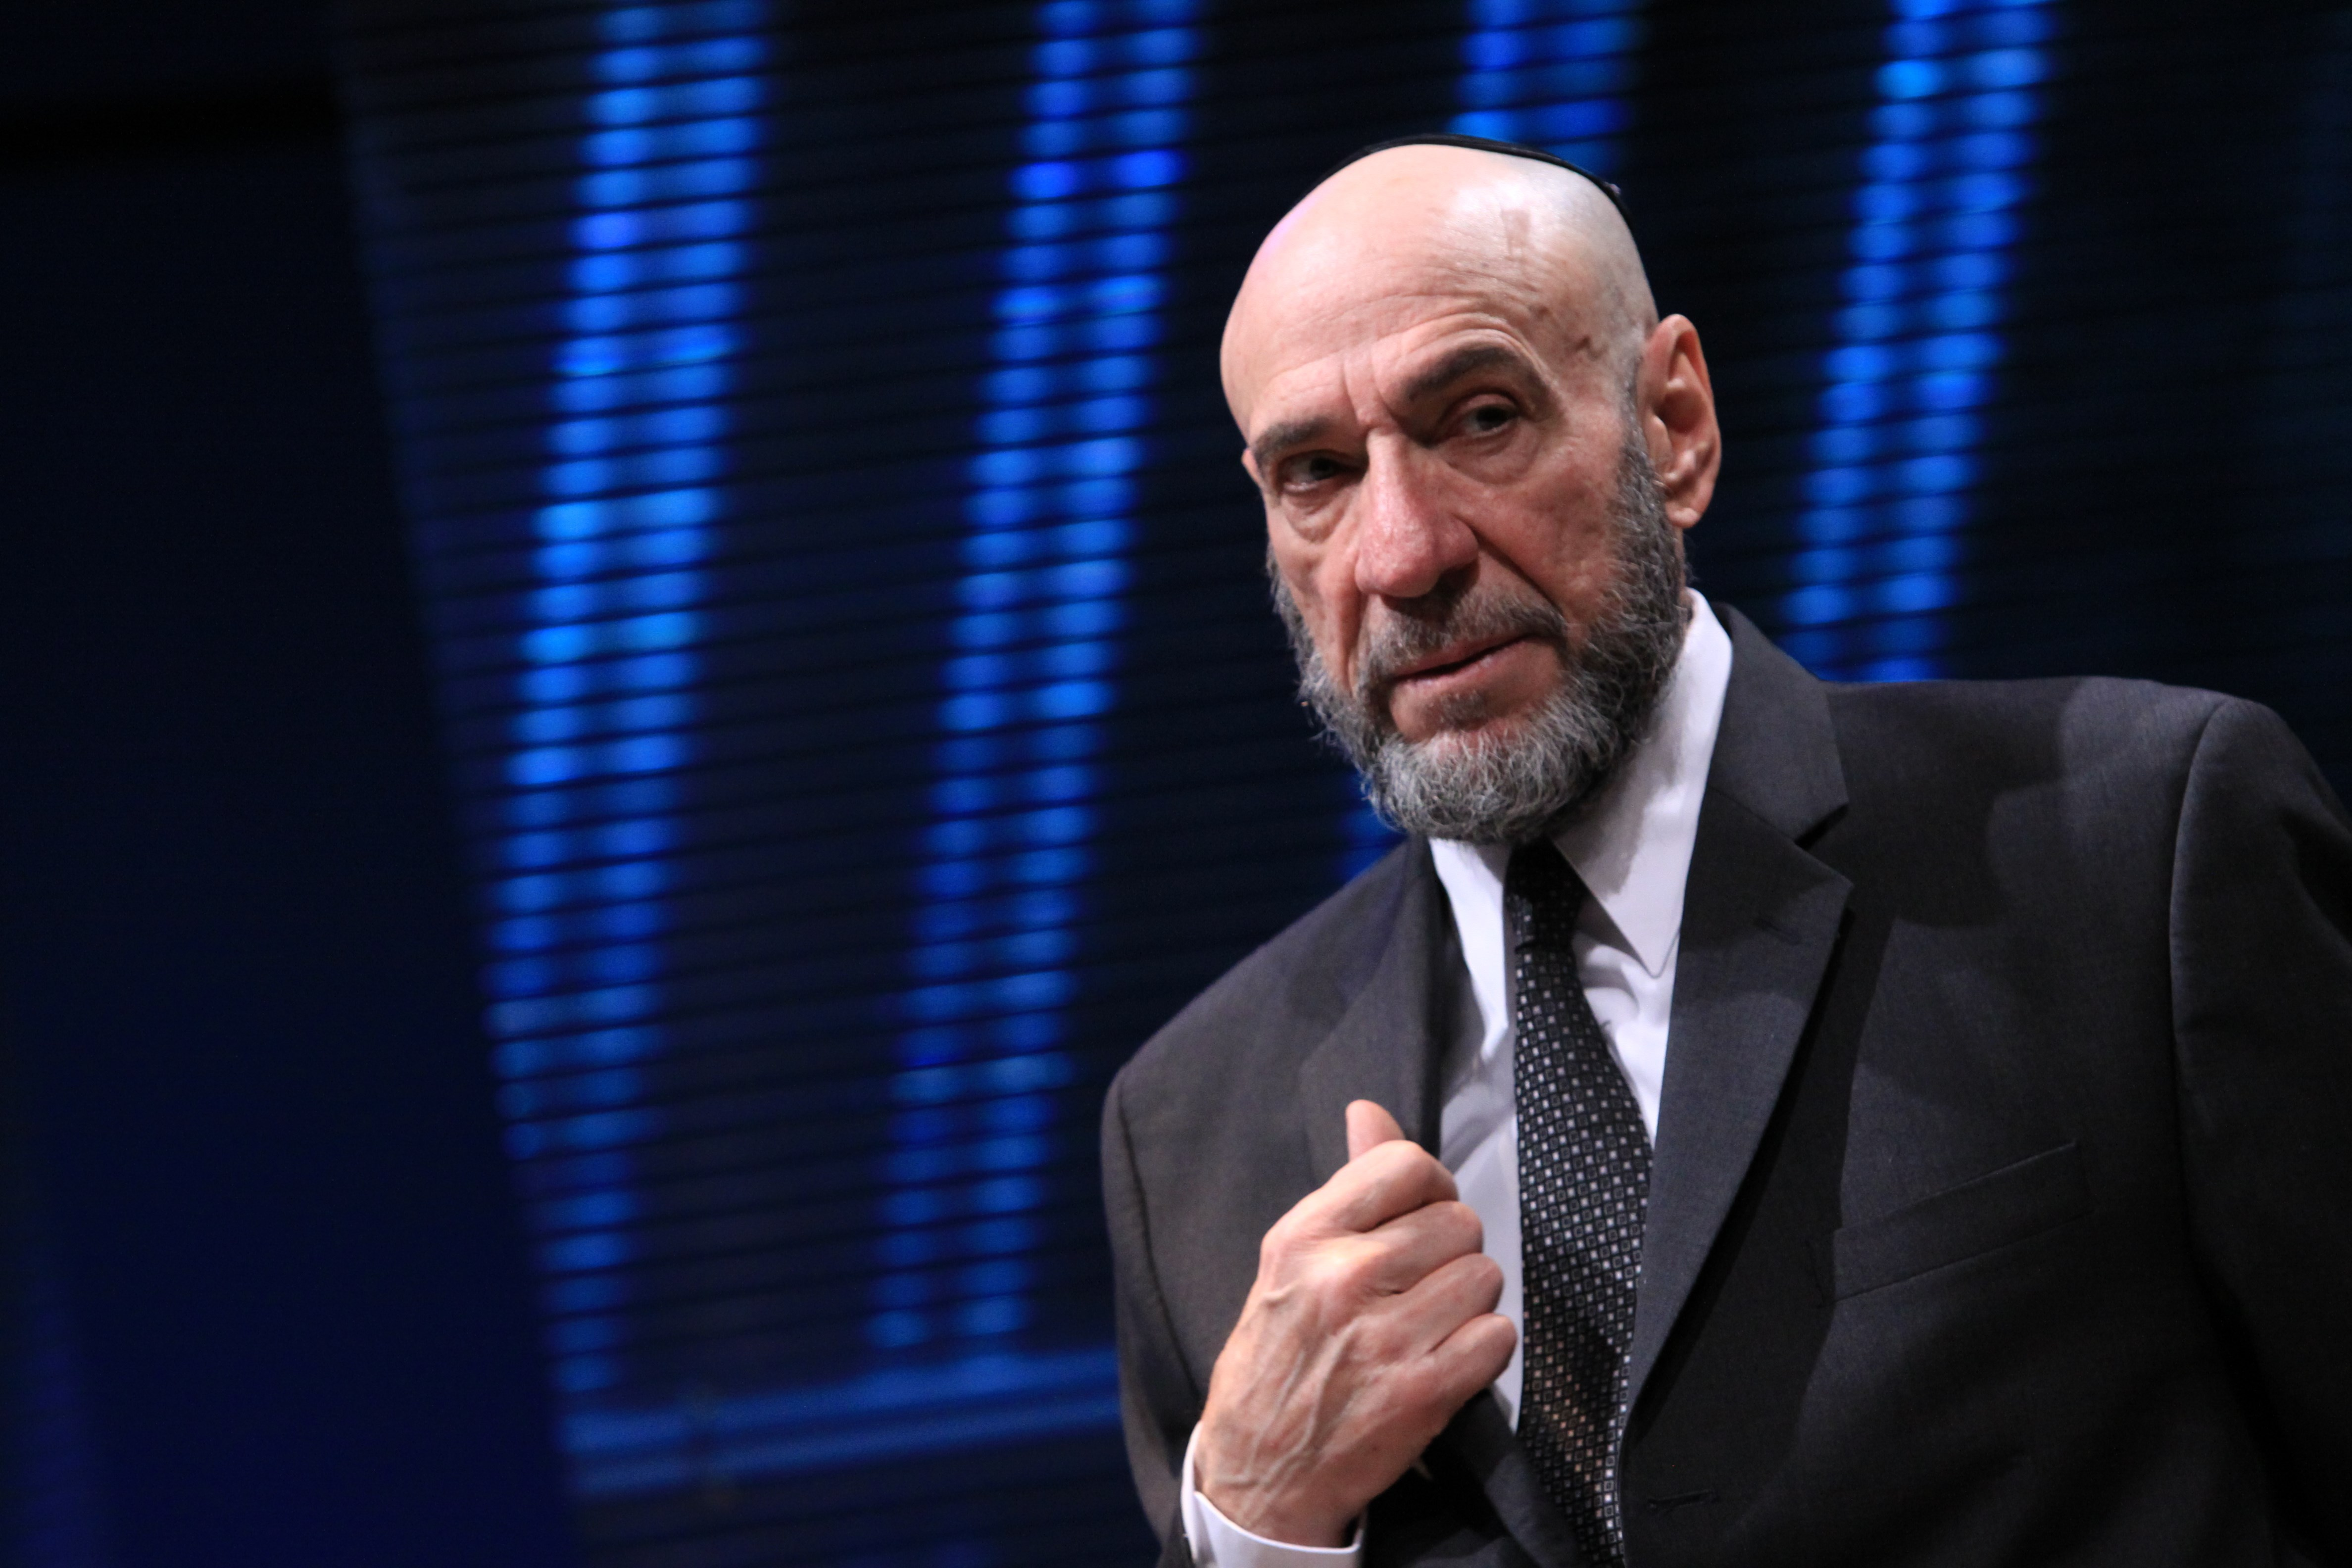 F Murray Abraham | Known people - famous people news and ...